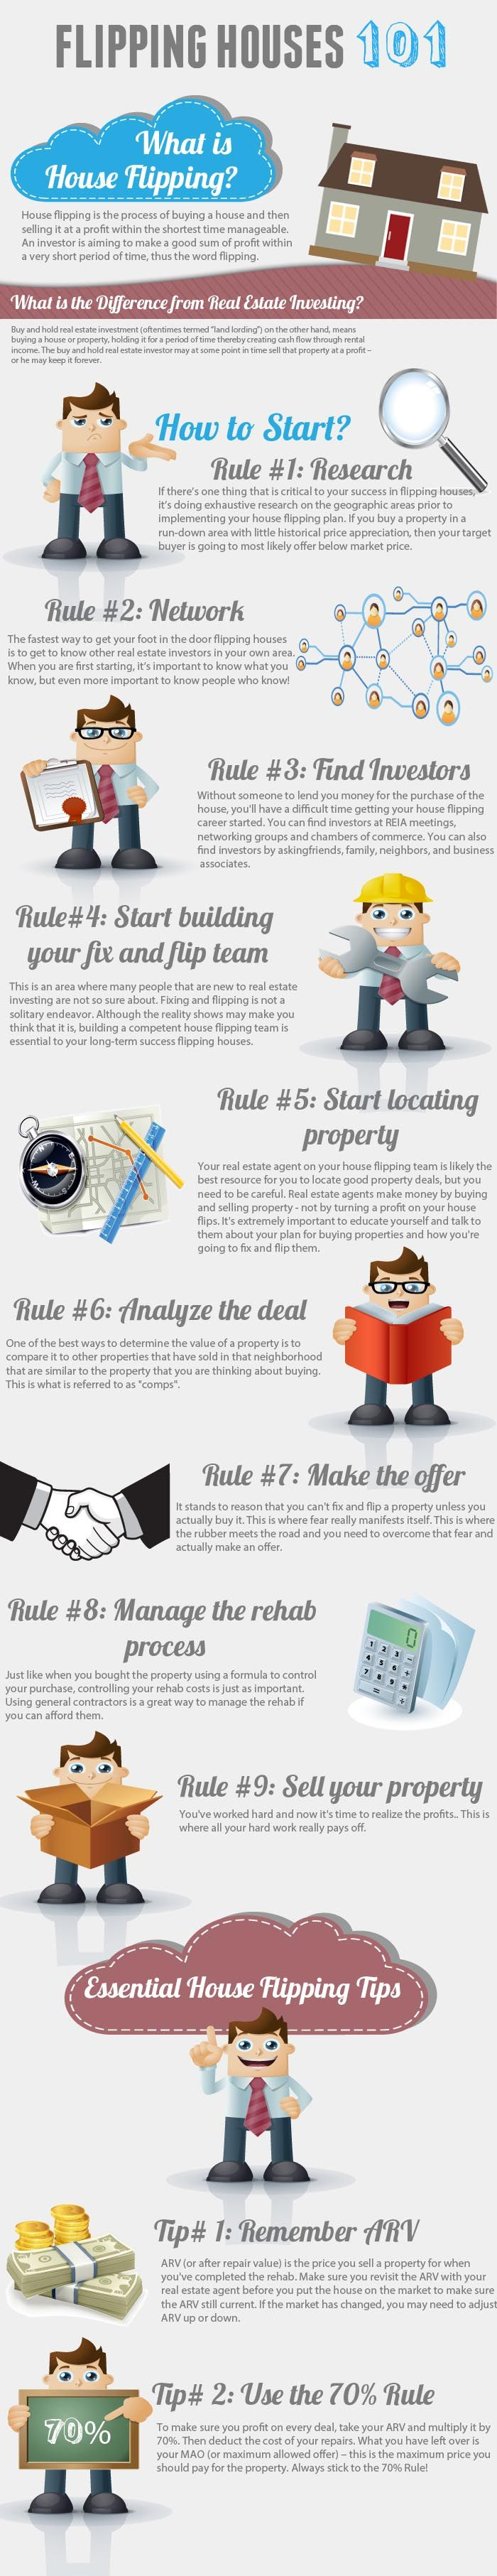 9 Steps To Flipping Houses [infographic]